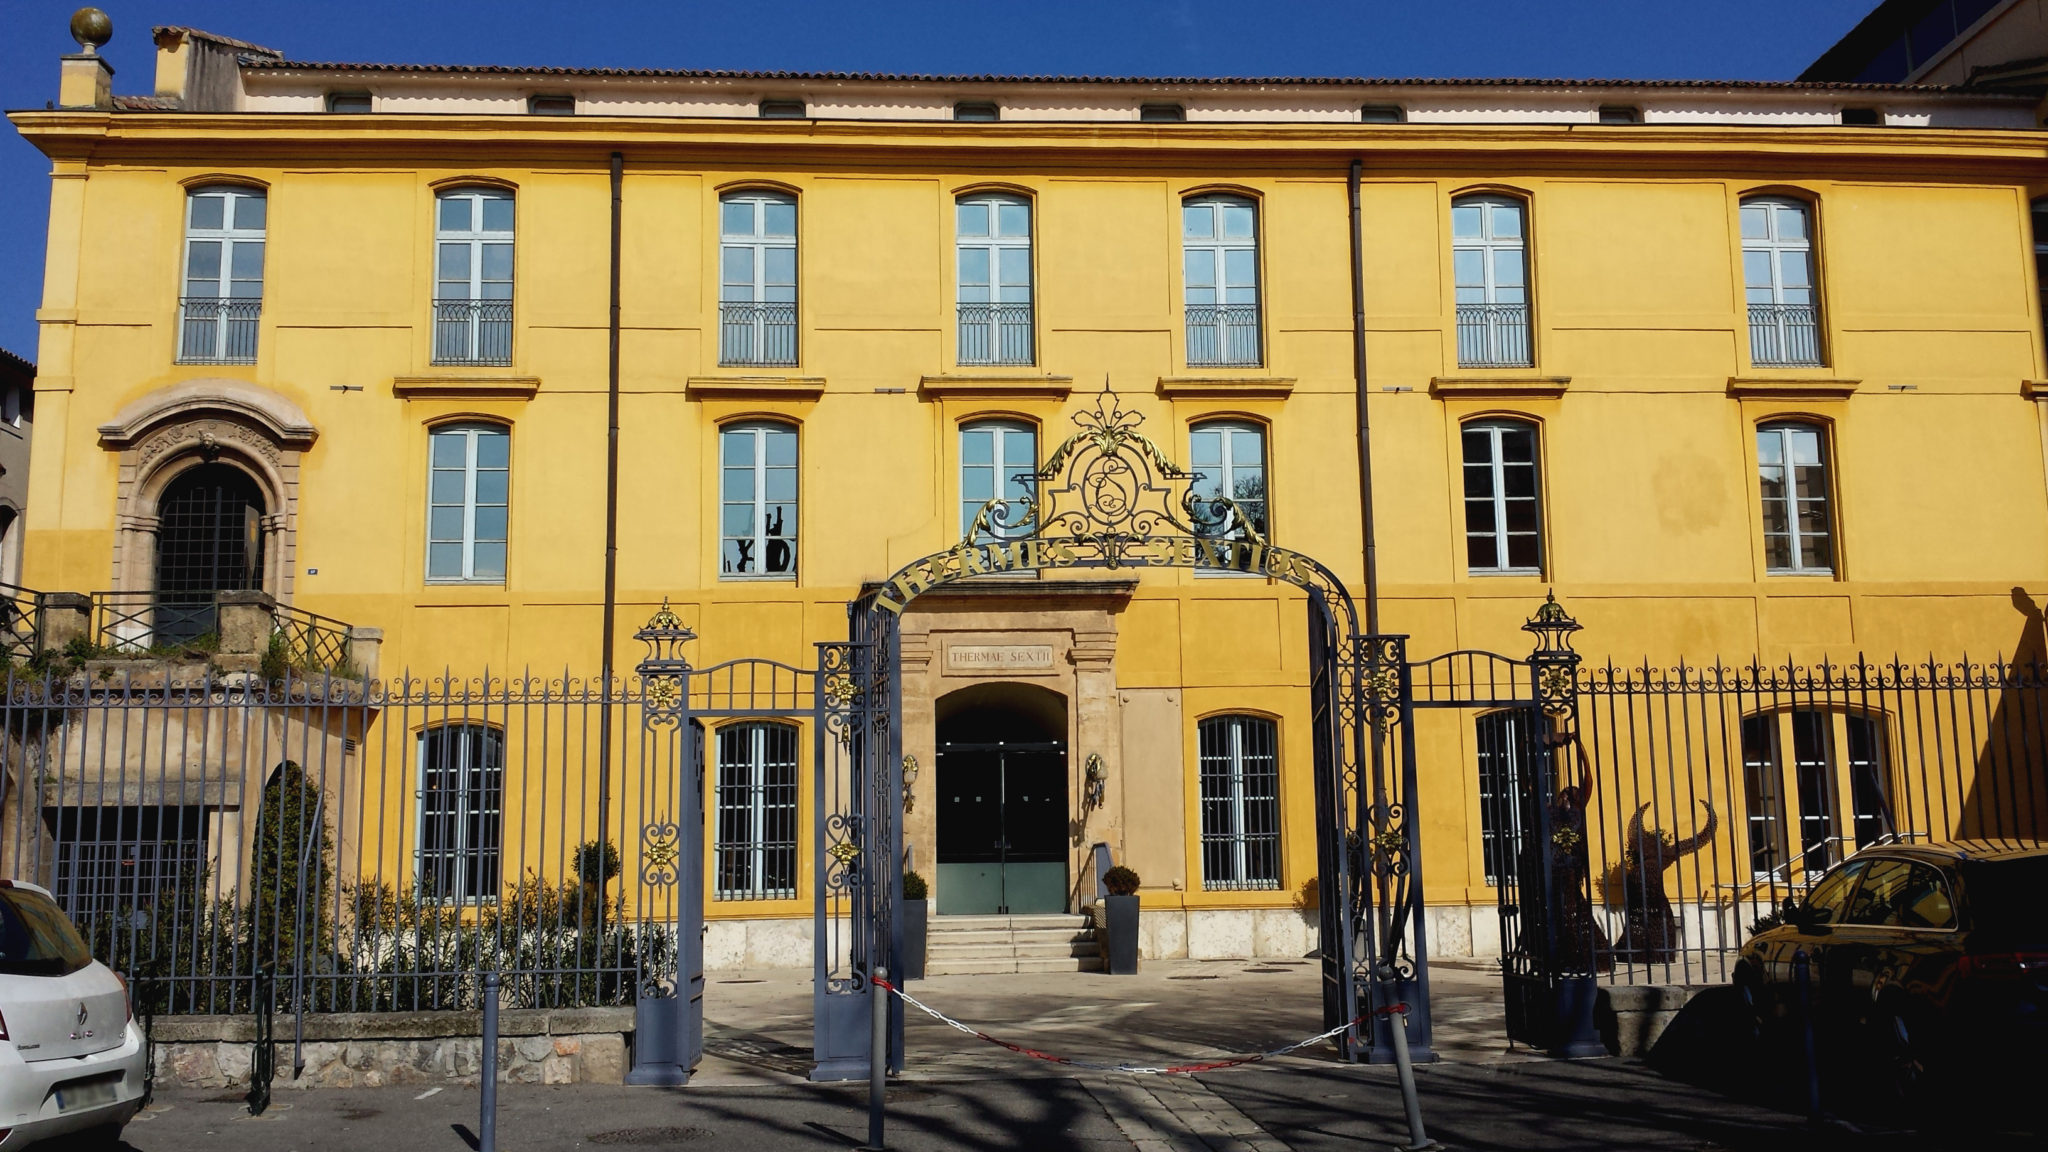 Journee_cocooning_aixenprovence_spa_thermes_sextius_facade_1